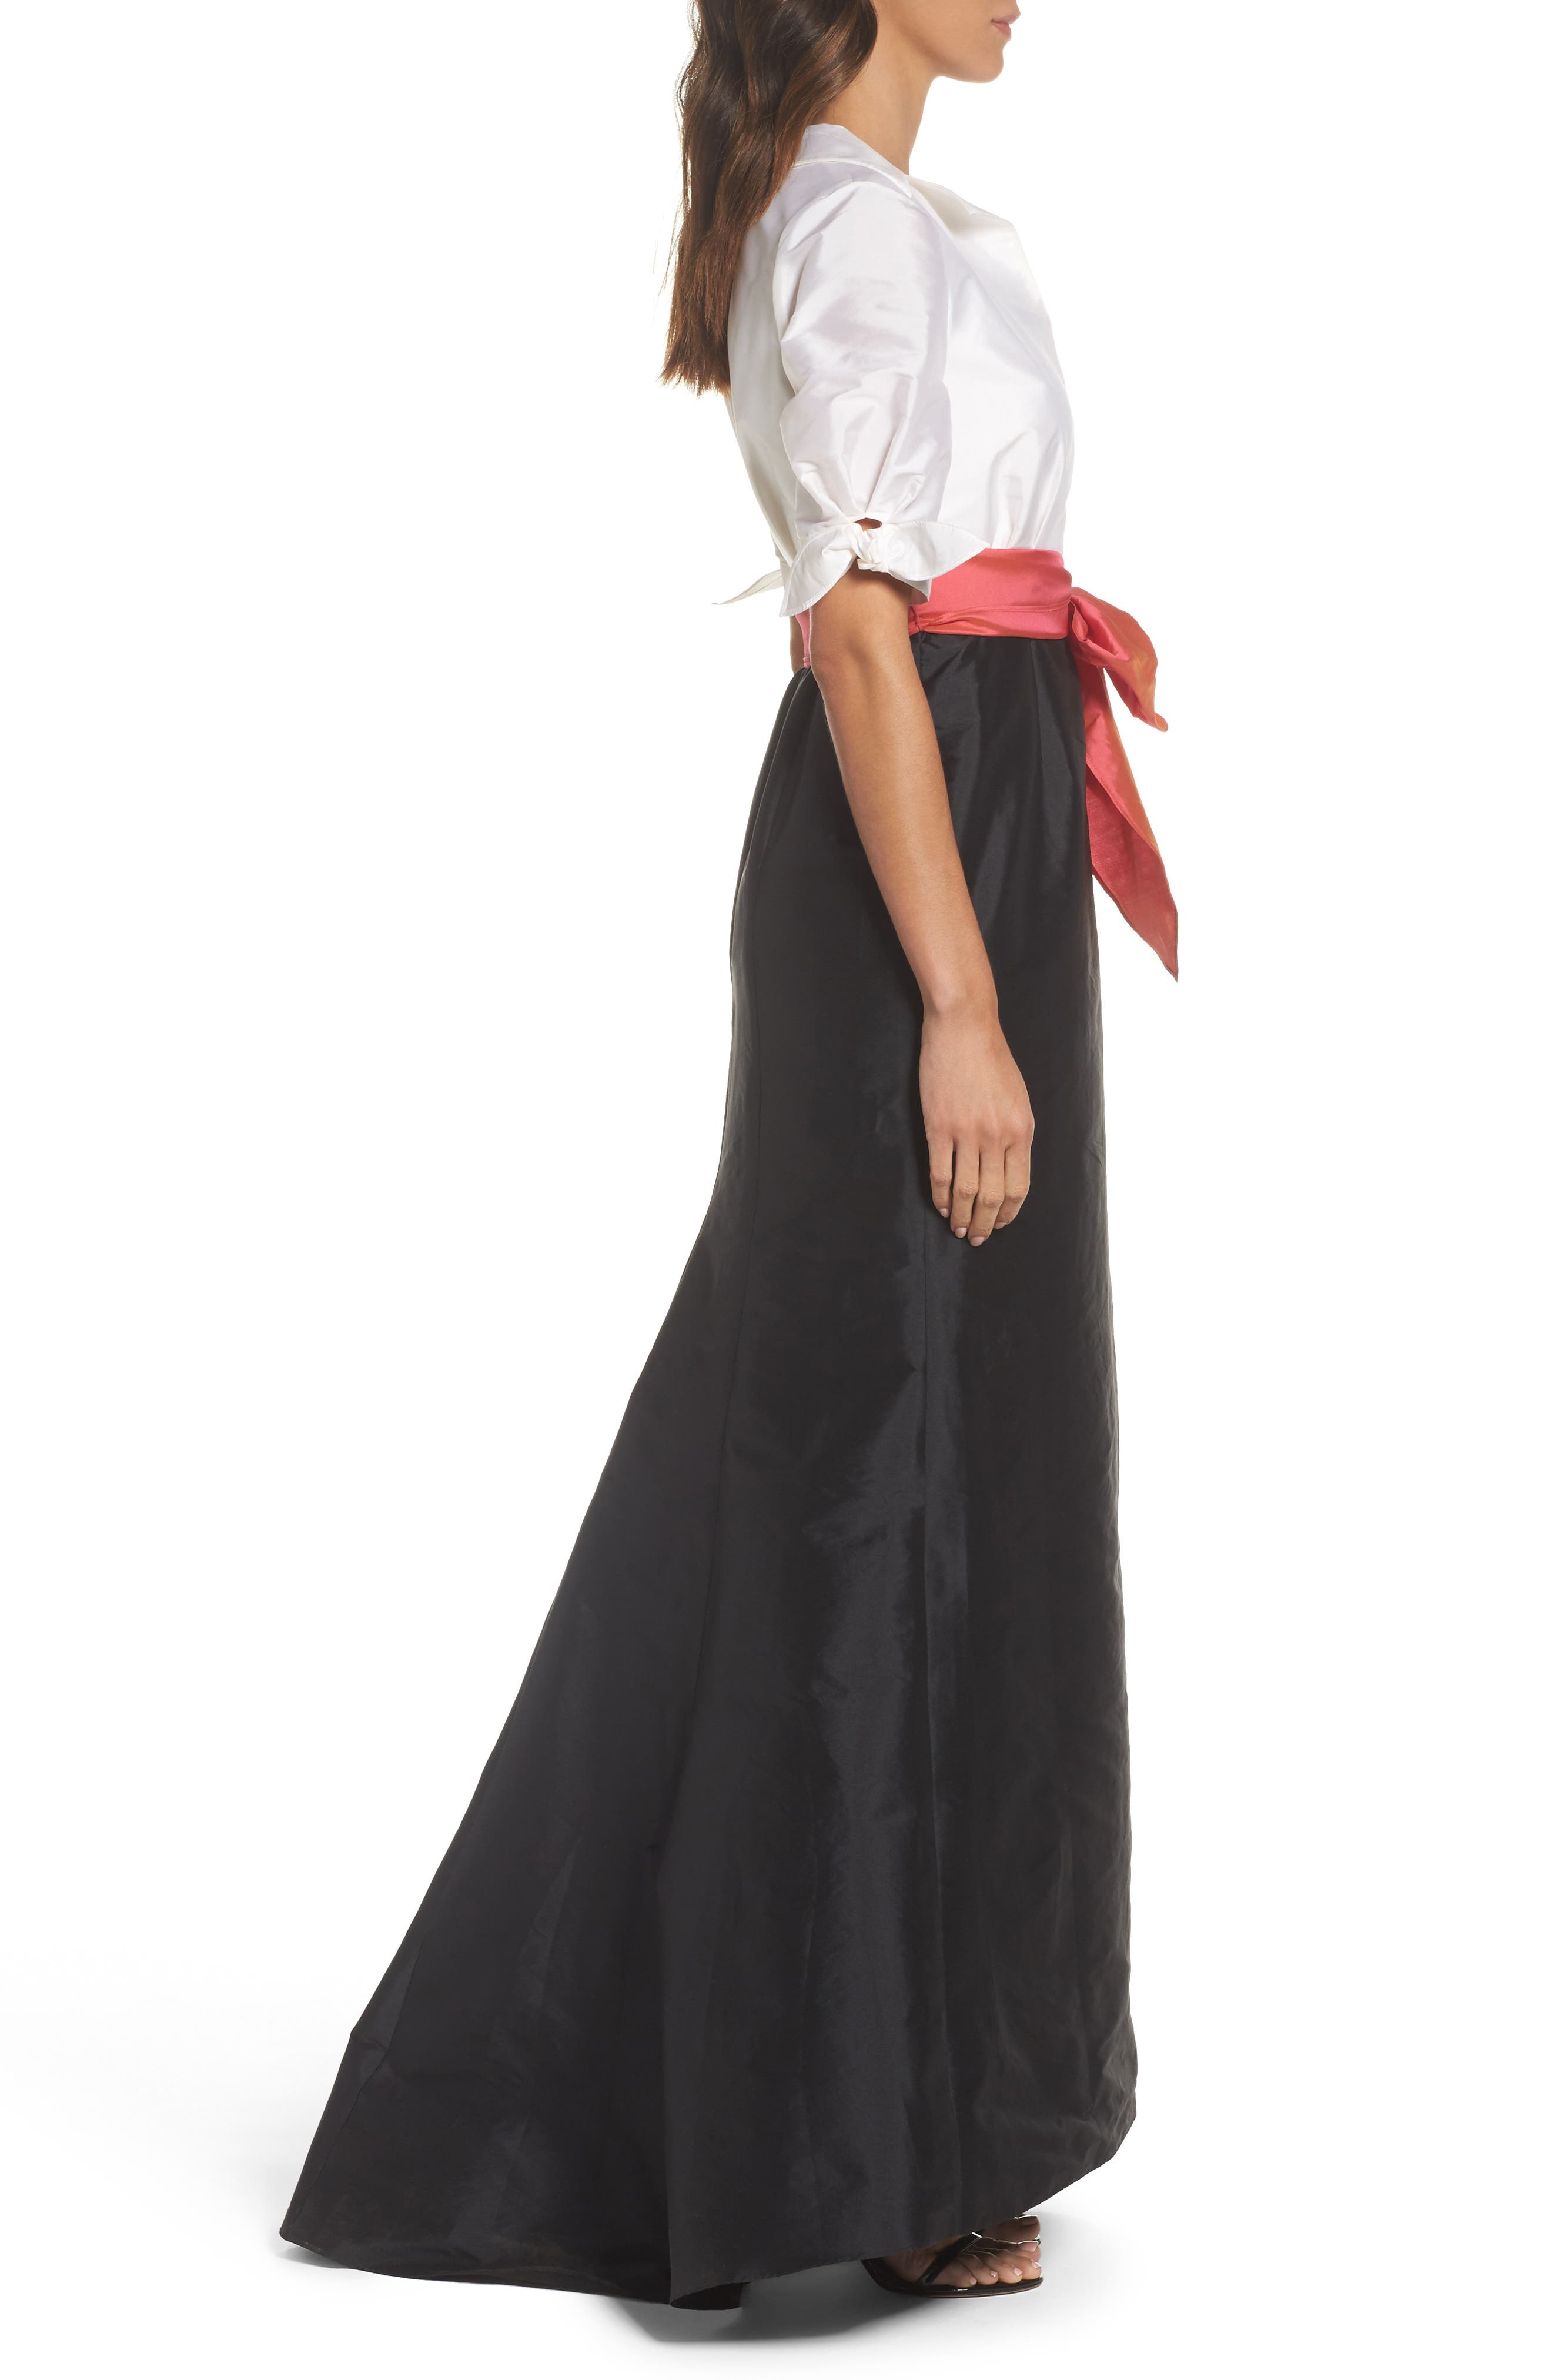 Adrianna Pappell Taffeta Mermaid Gown with Train,                             Alternate thumbnail 3, color,                             001